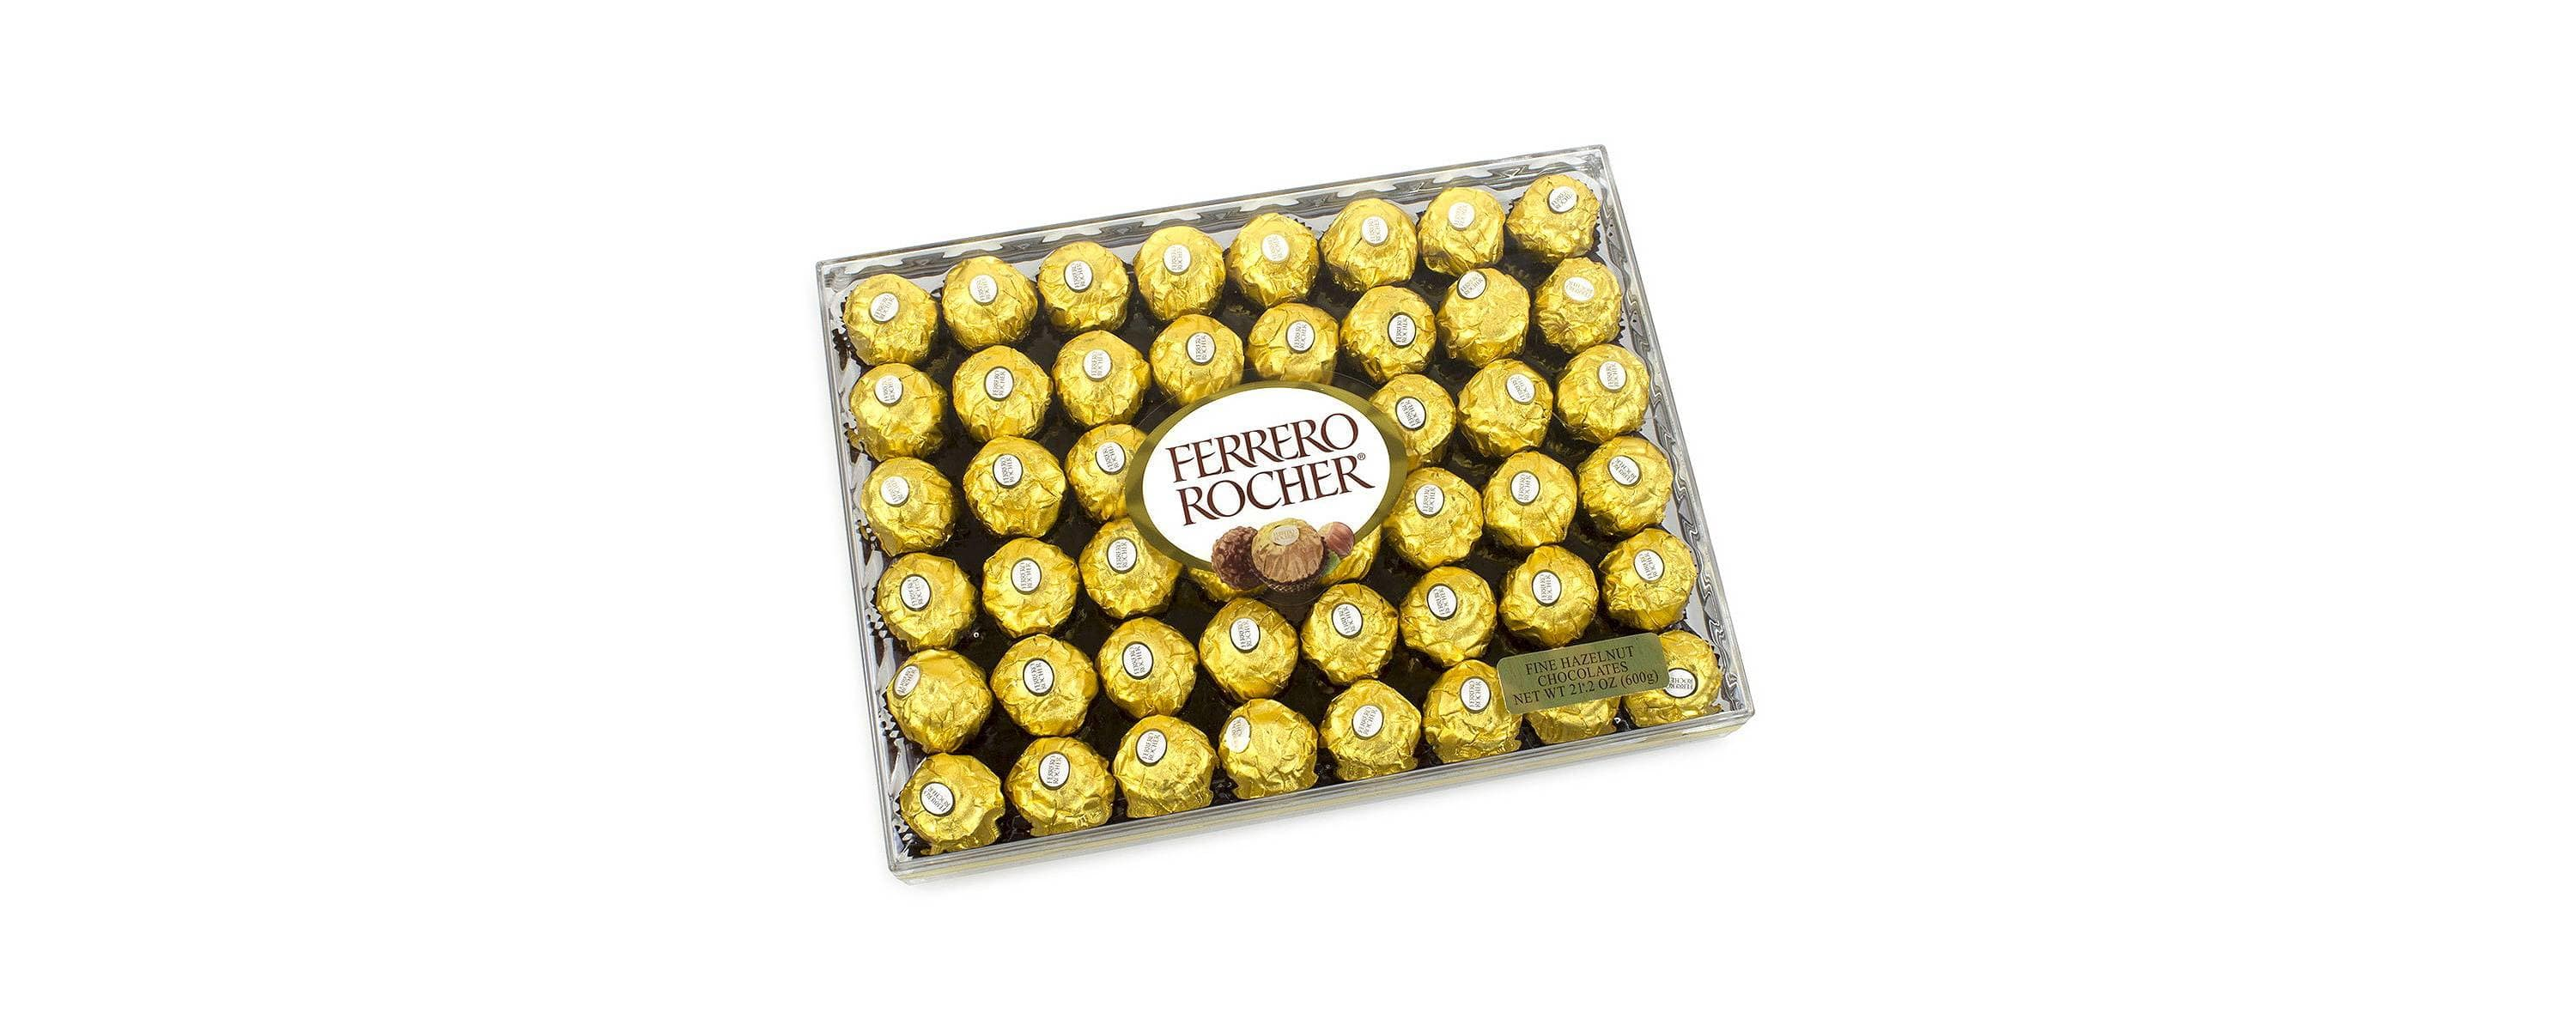 30% Off Ferrero Rocher with In-store Pick-up and Cartwheels Offer. YMMV.